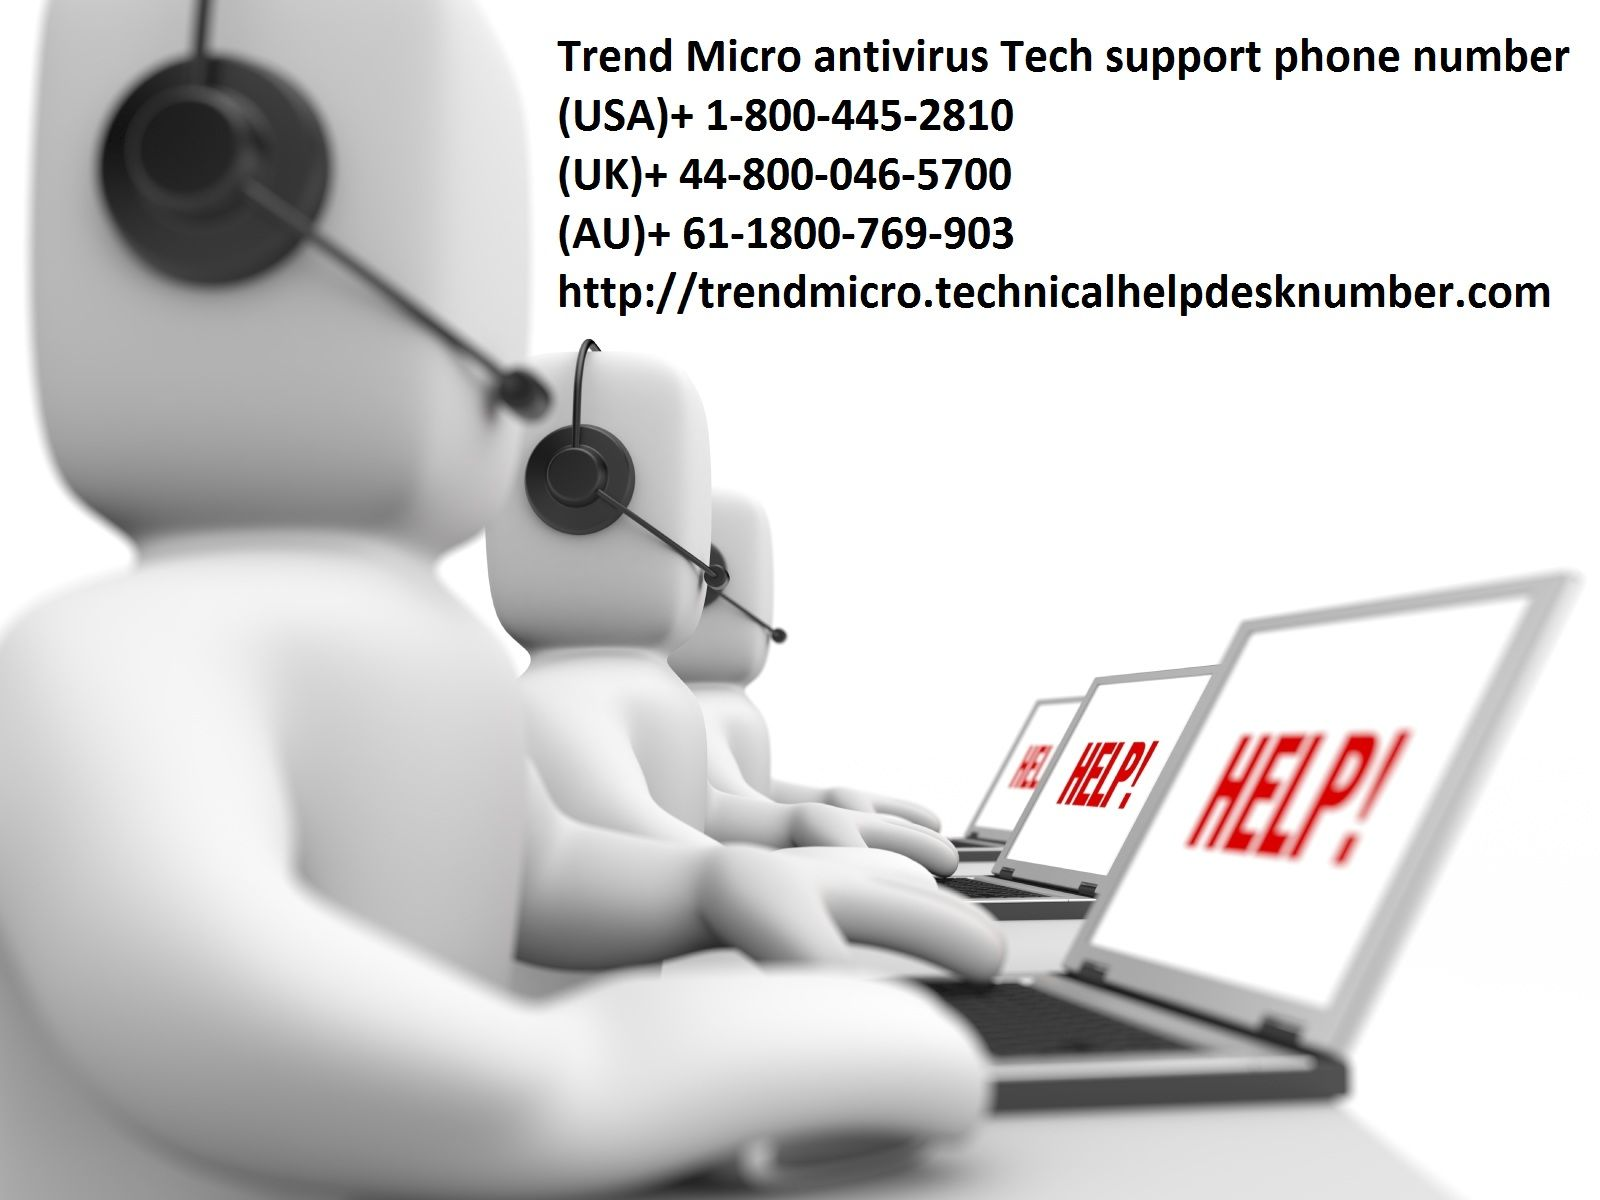 Experts Available 24 /7 for Trend Micro Technical Support